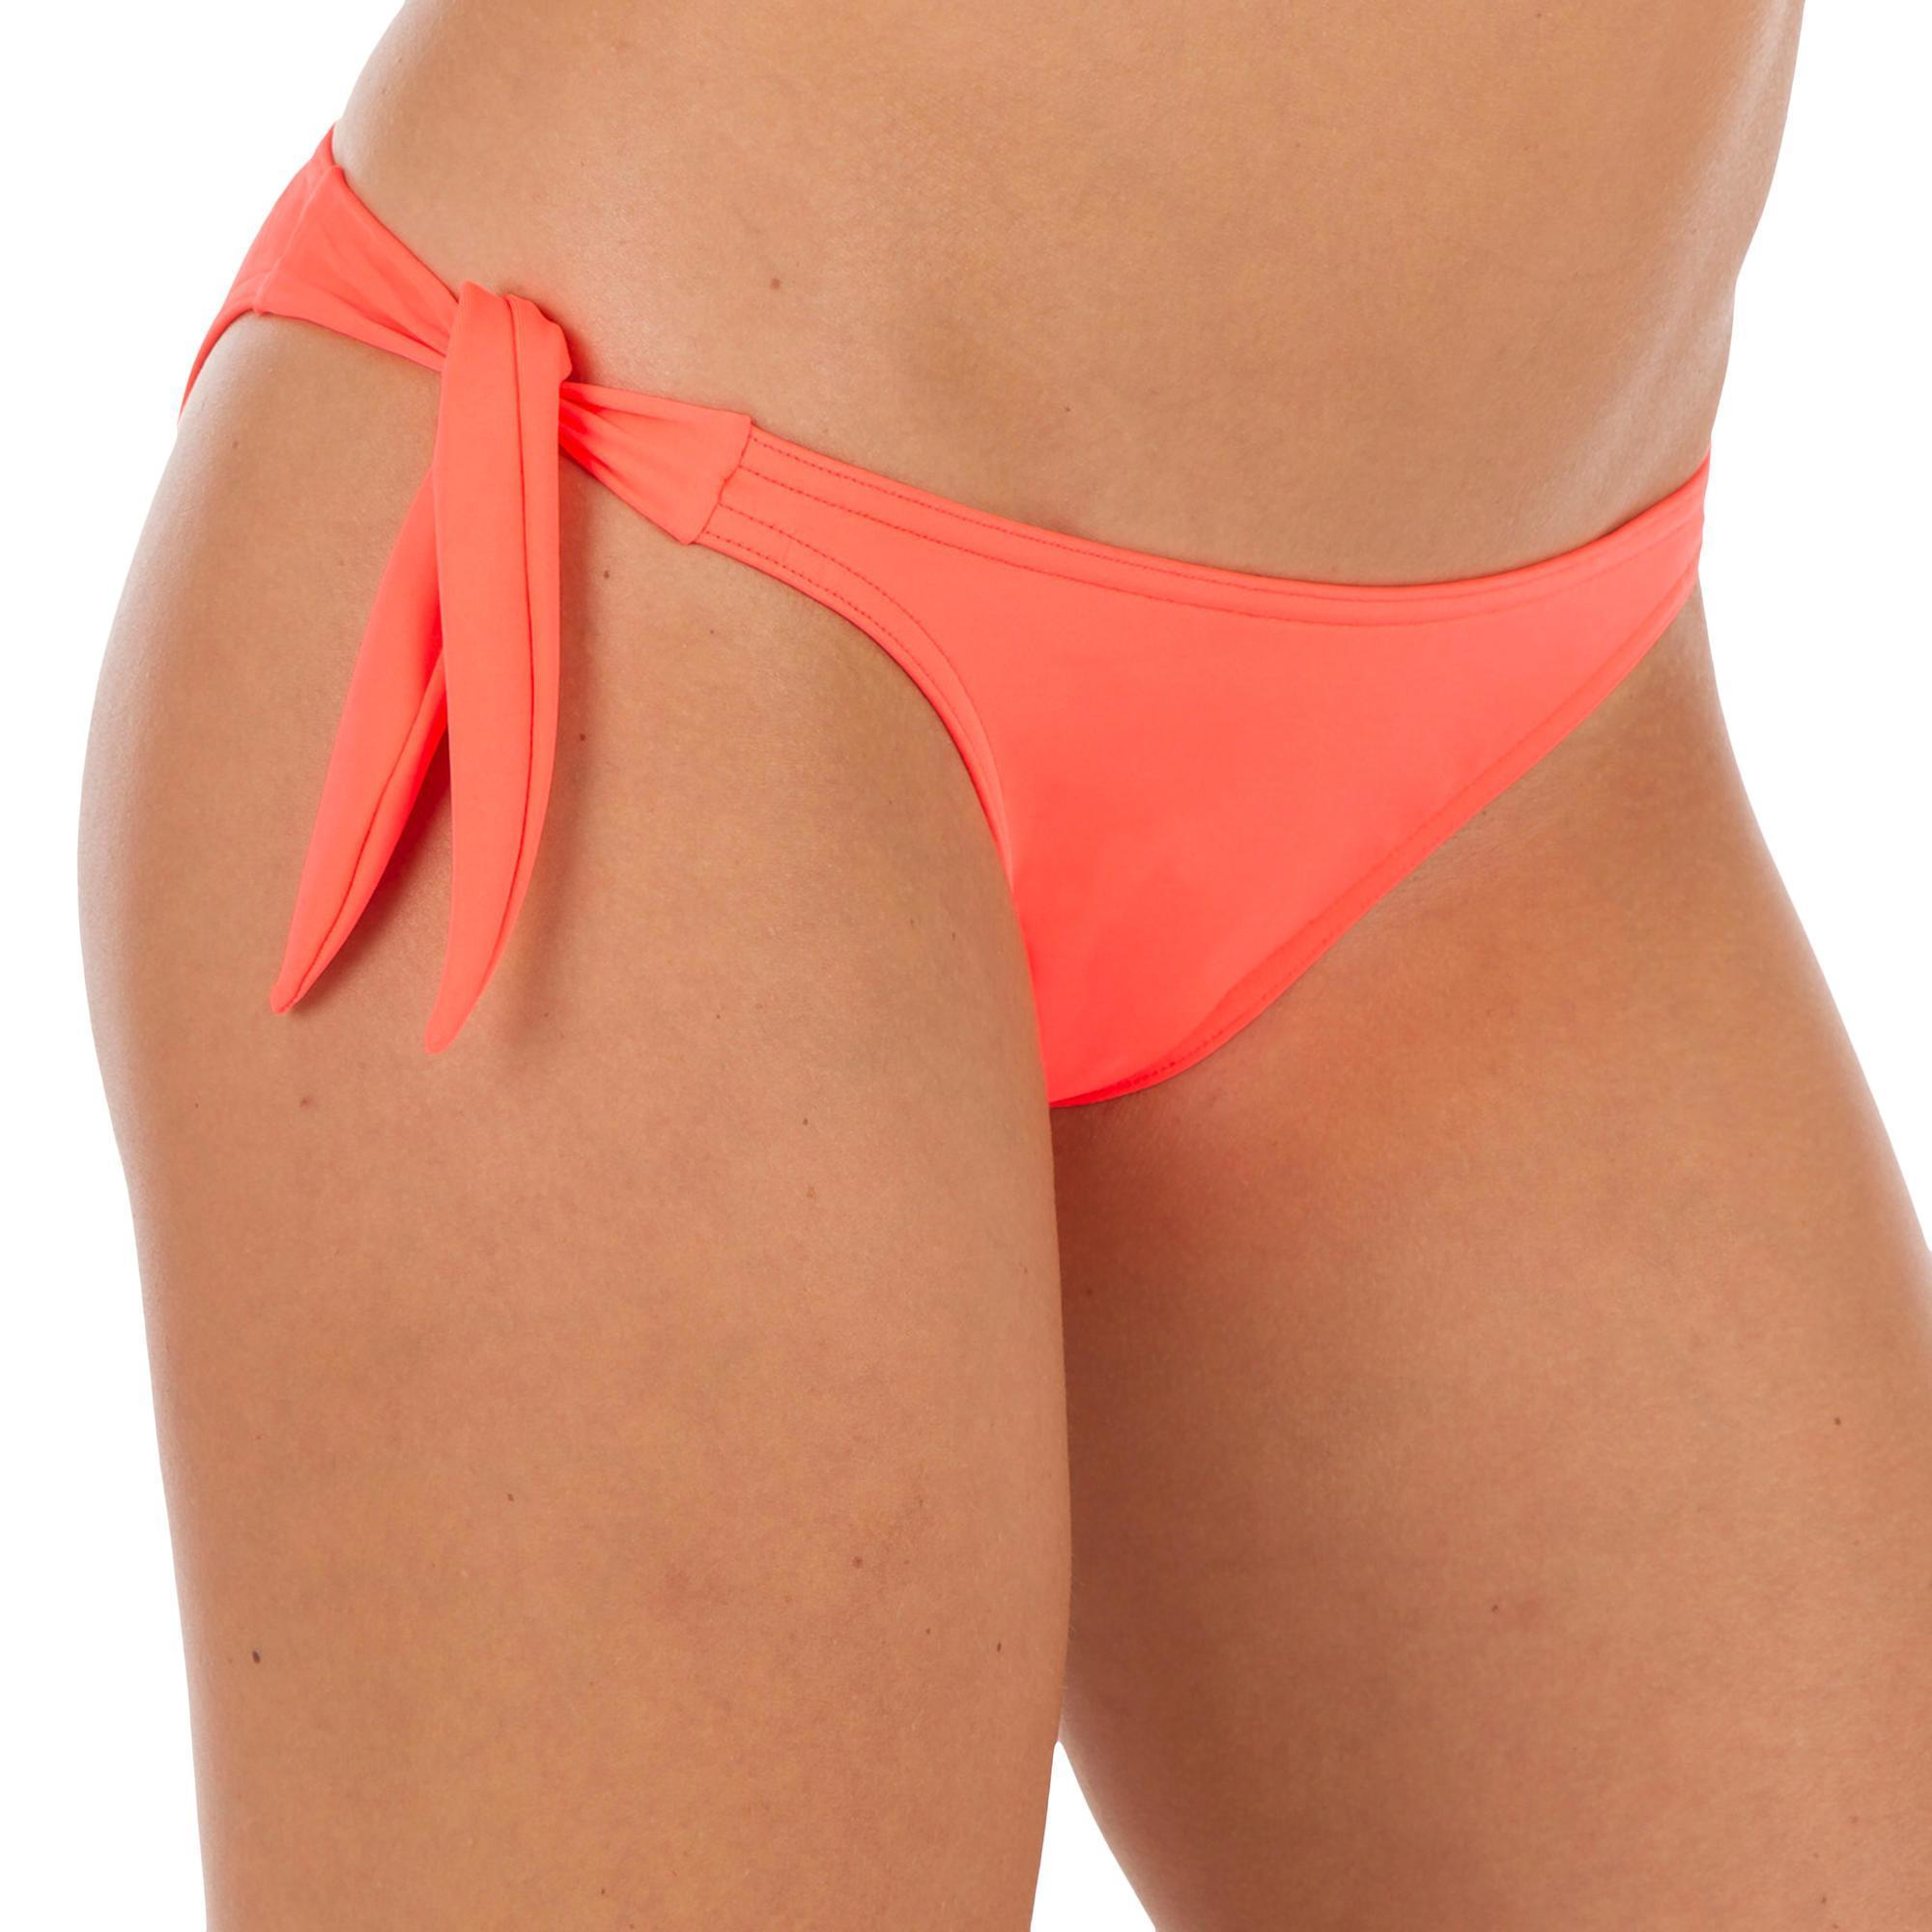 5fea7508b15 - Sabi Women's Tie-Side High-Leg Swimsuit Bottom Bikini Briefs - Neon Coral